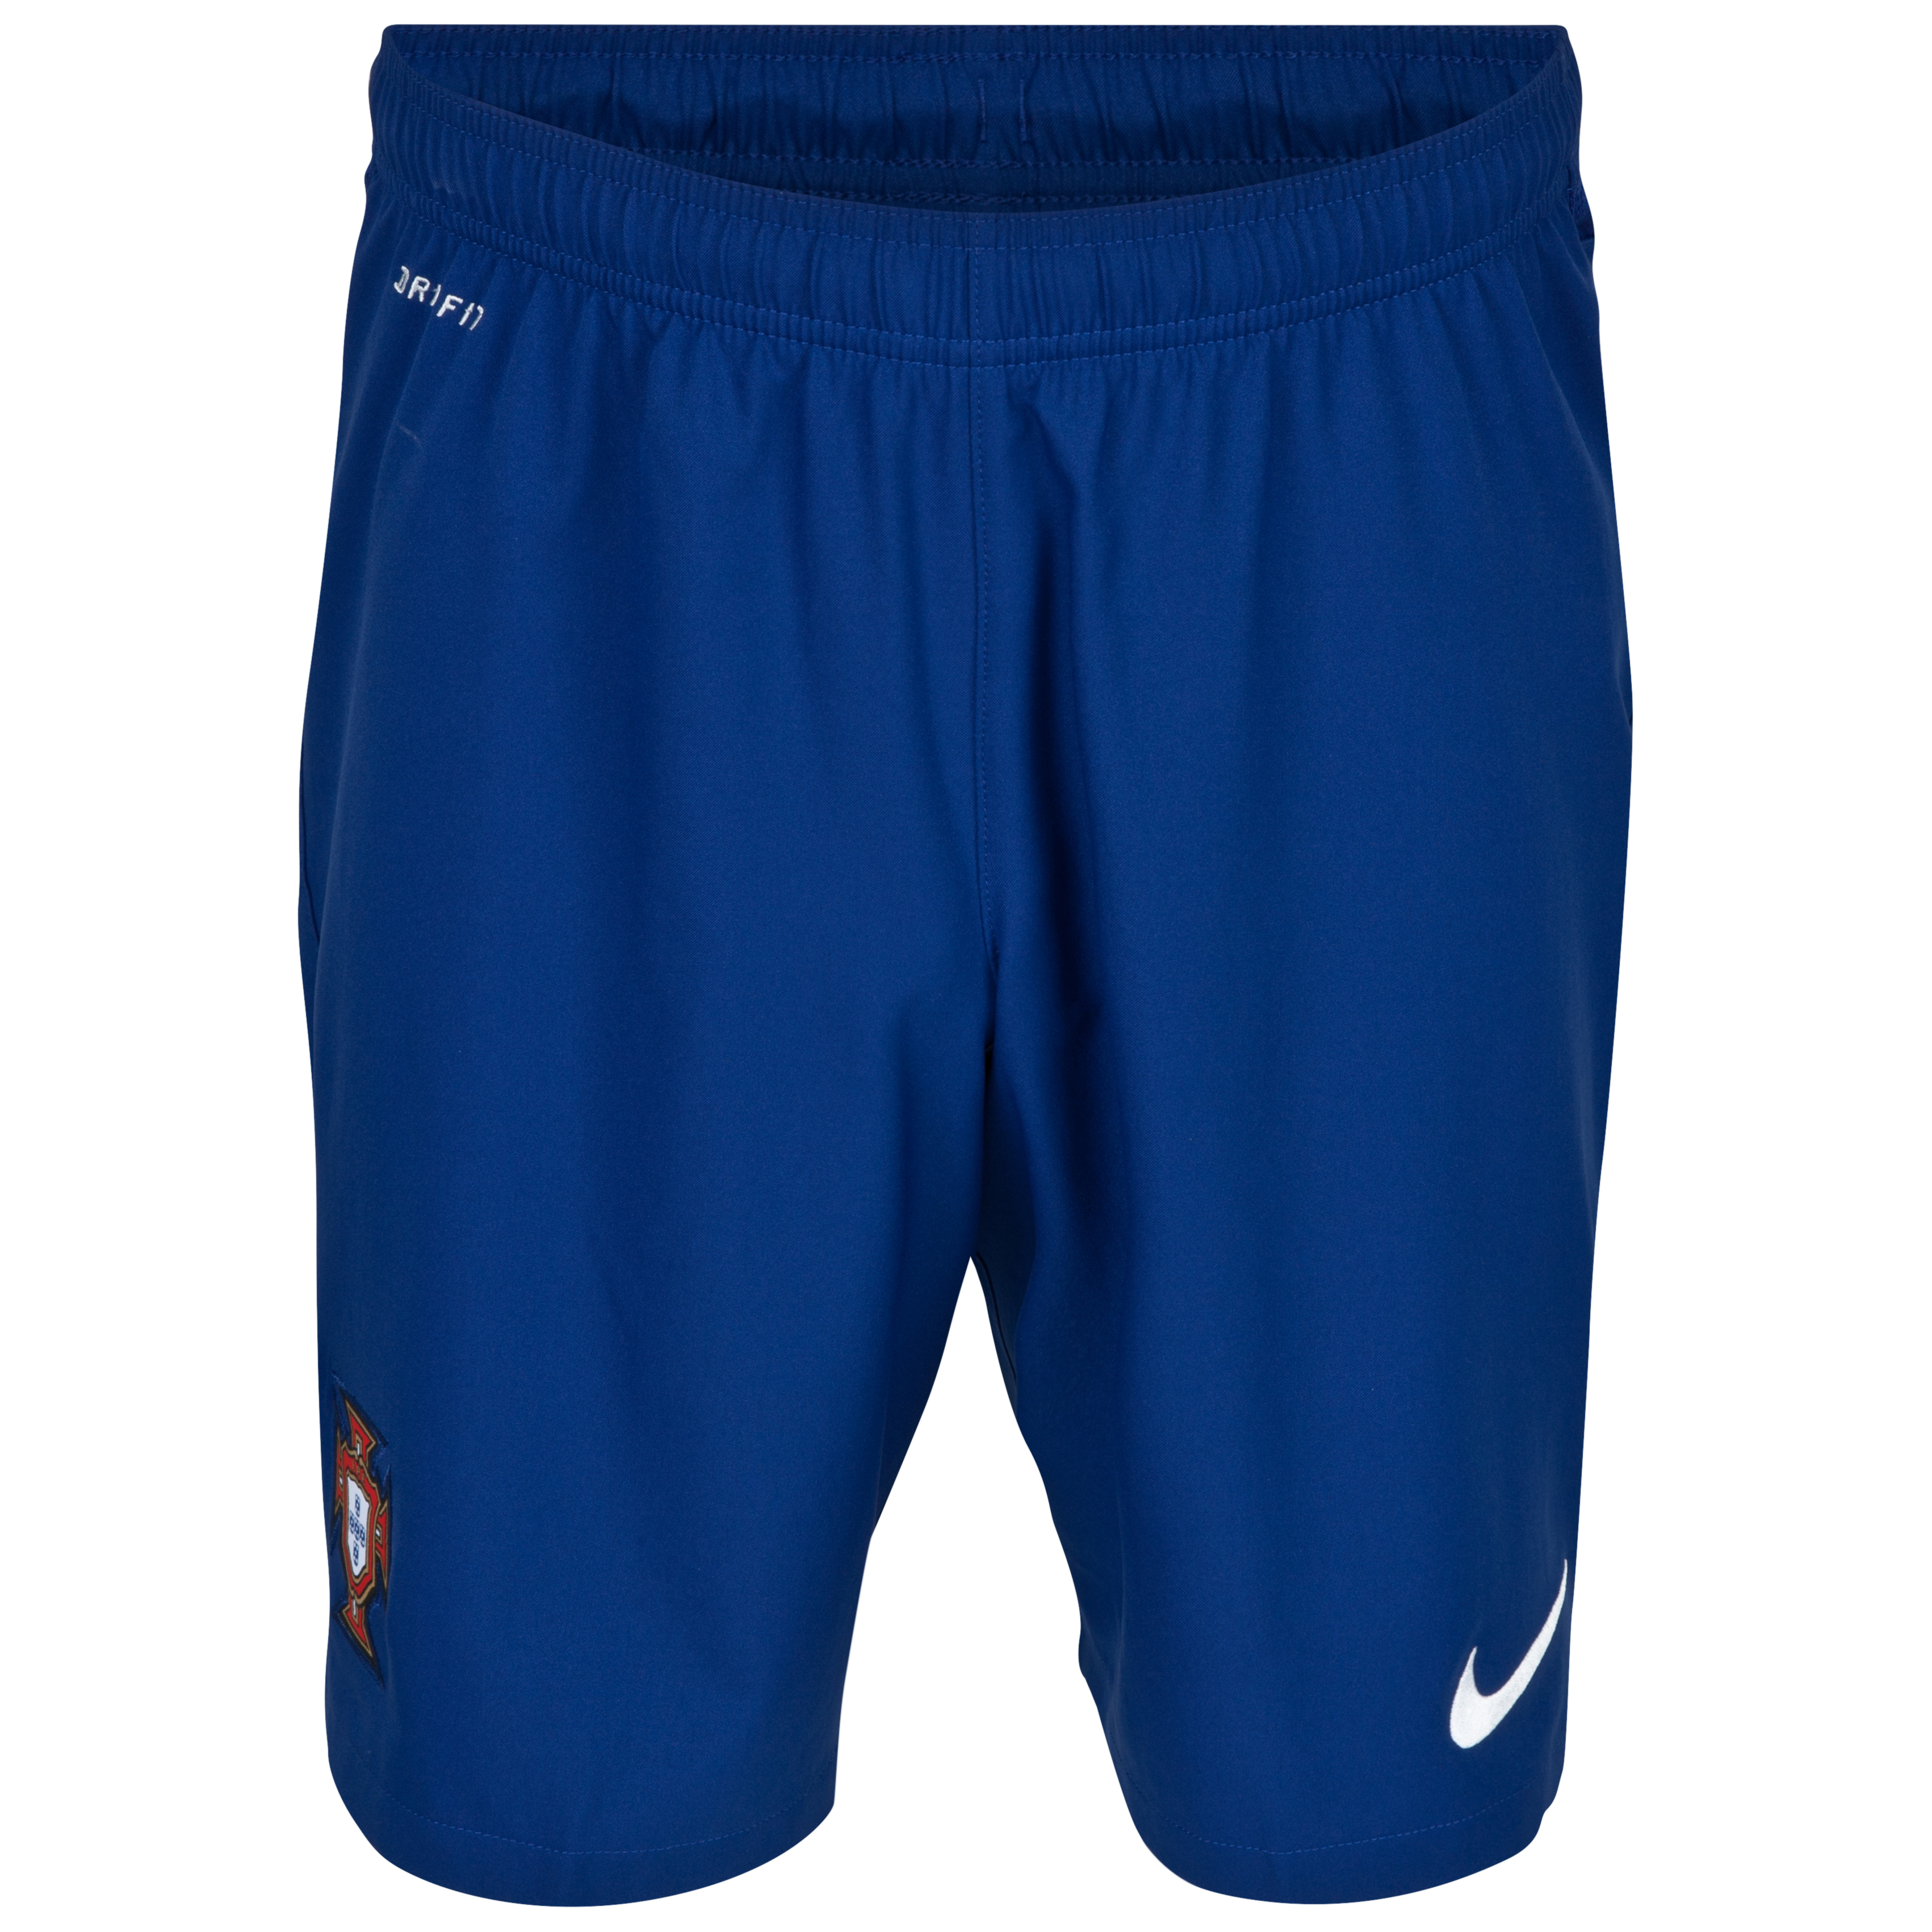 Portugal Away Shorts 2014 Royal Blue